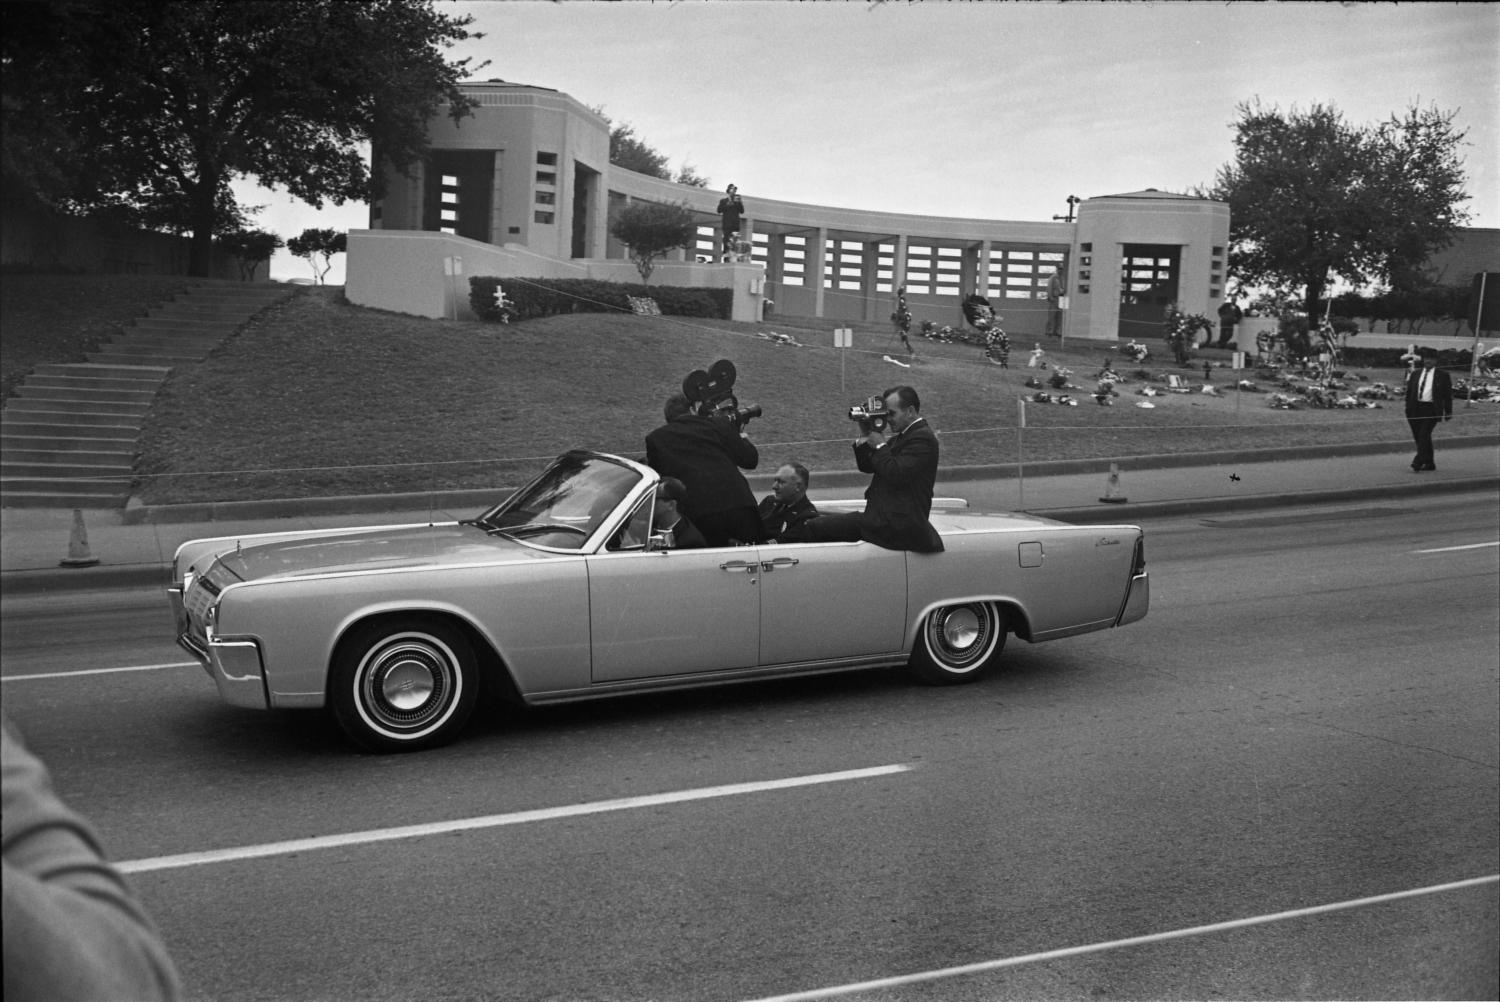 Kennedy Assassination How Many In The Car